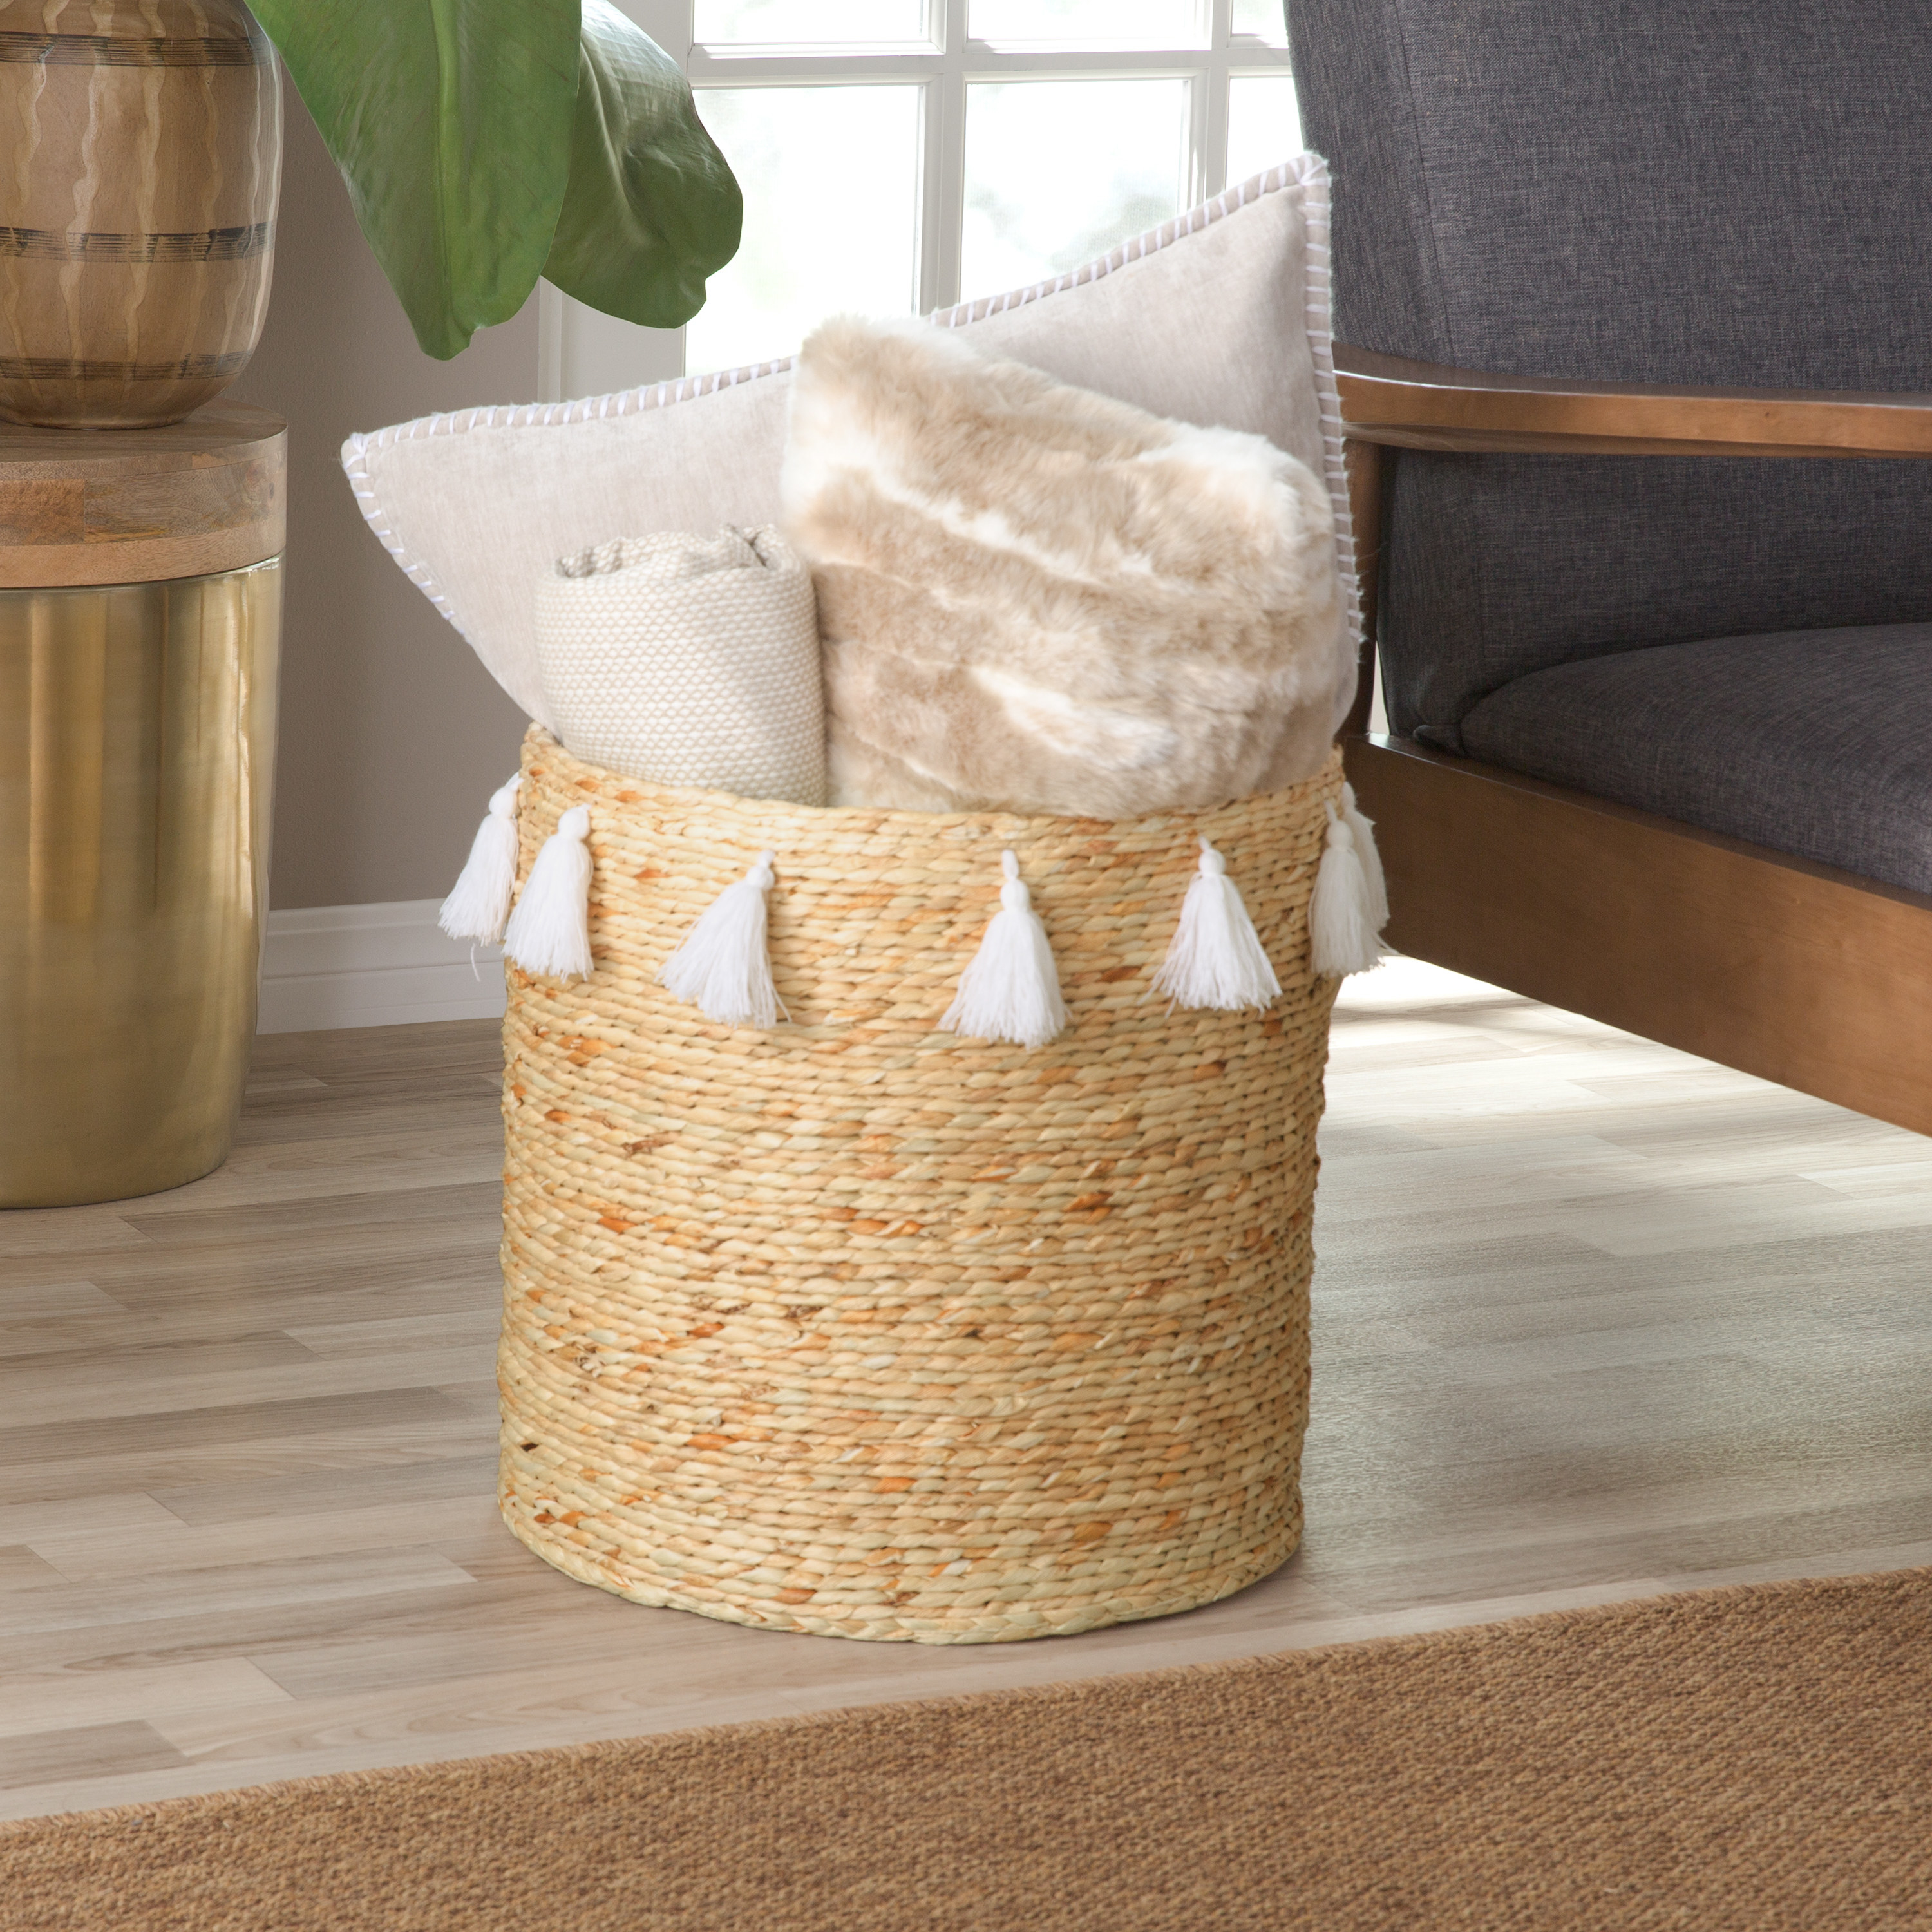 a light tan woven basket with white tassels hanging off the edge